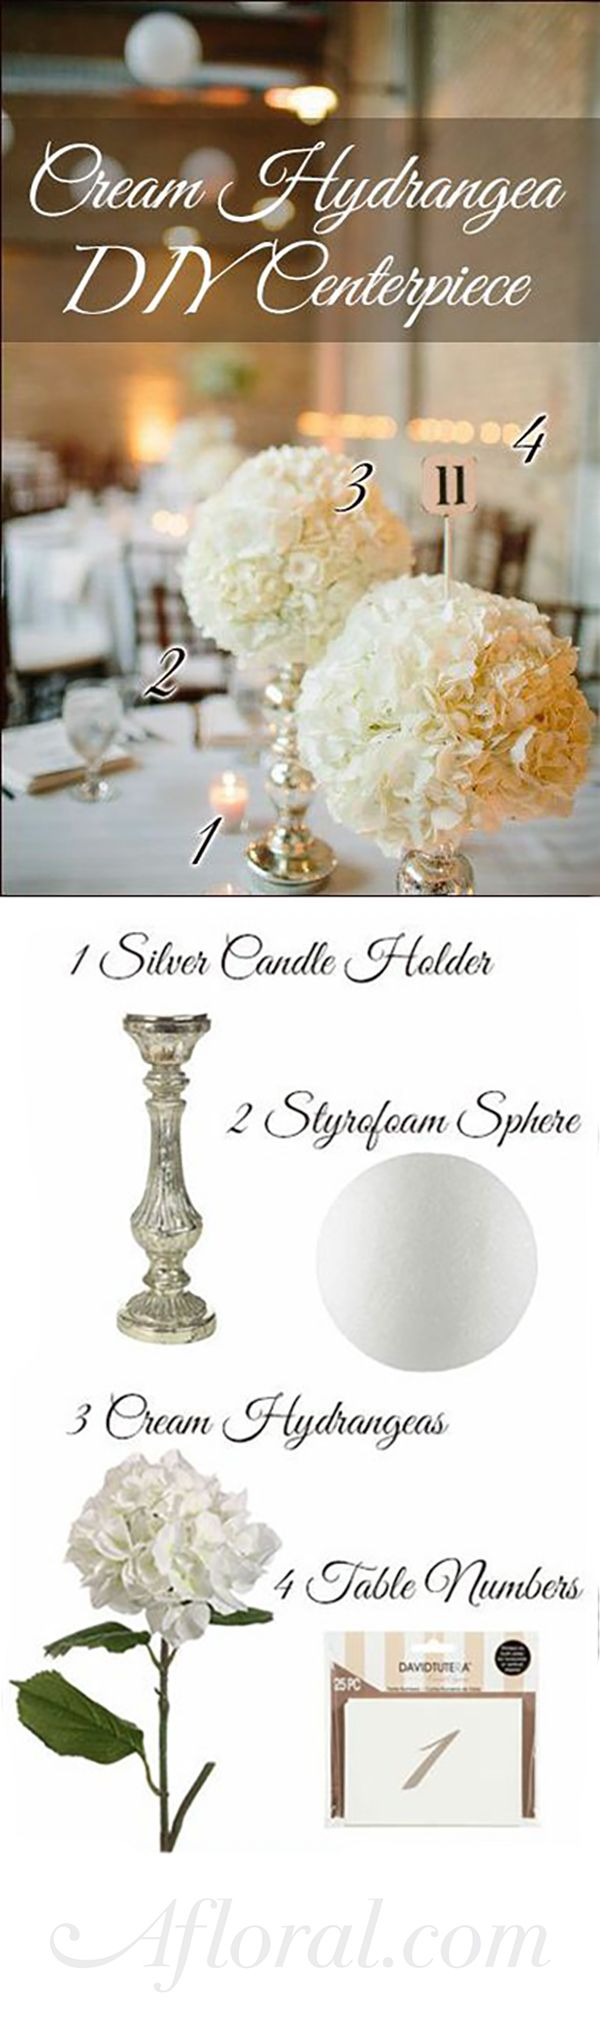 DIY Hydrangea Centerpiece ideas for your wedding reception  centerpieces.  Make your own with high-quality silk flowers from Afloral.com.  Centerpiece photo from Style Me Pretty.